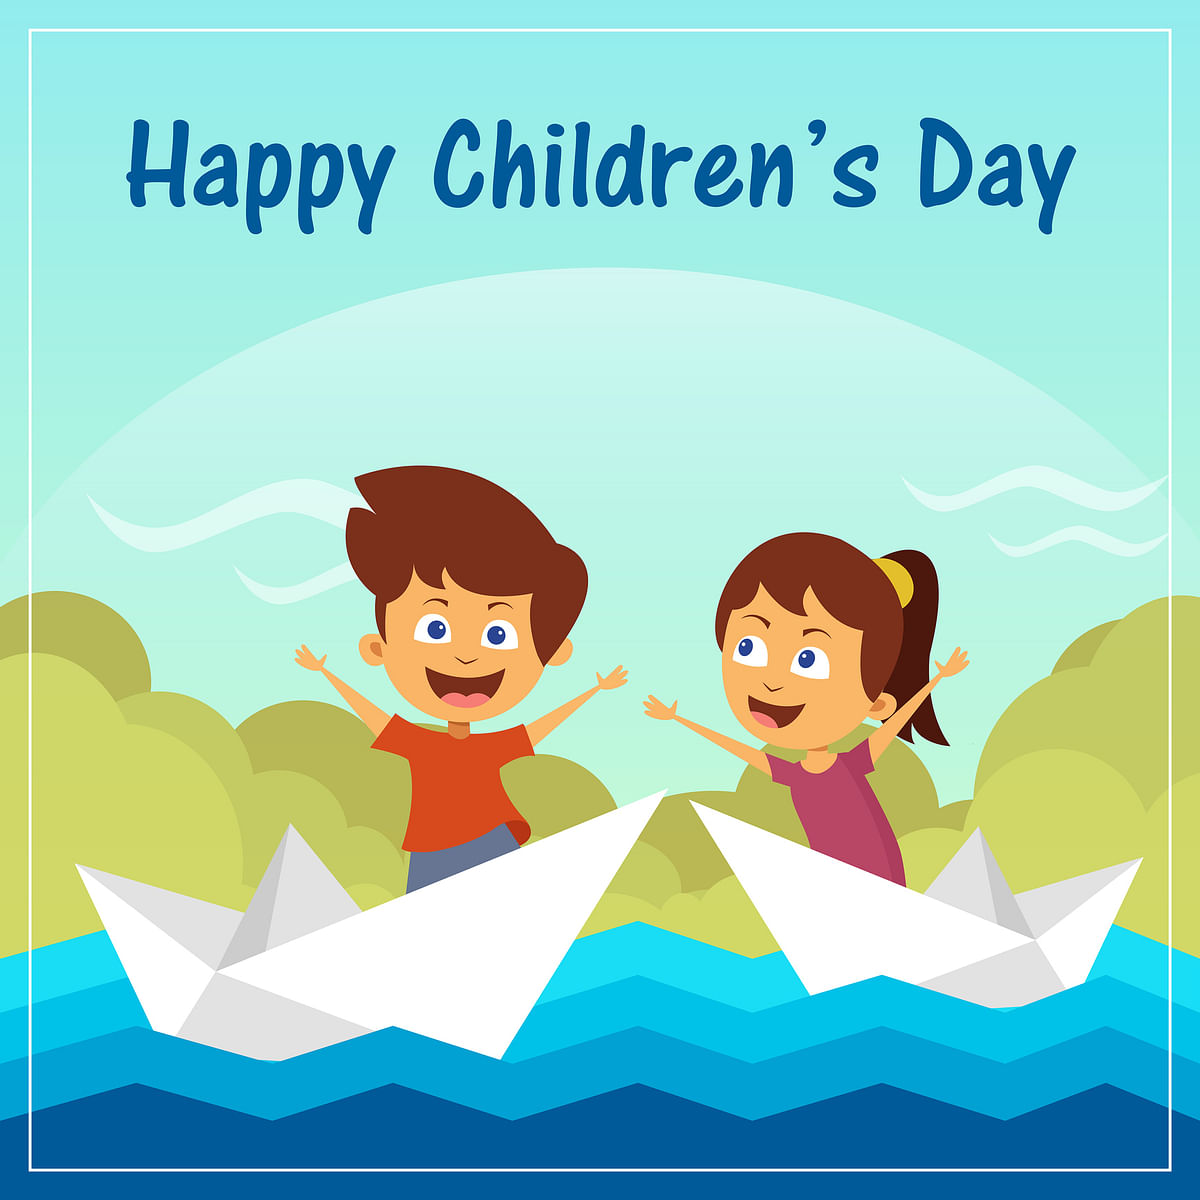 Happy Children Day 2019 Download Images Wishes Quotes Cards And Greetings In English And Hindi For Facebook Message Whatsapp Text And Instagram Images